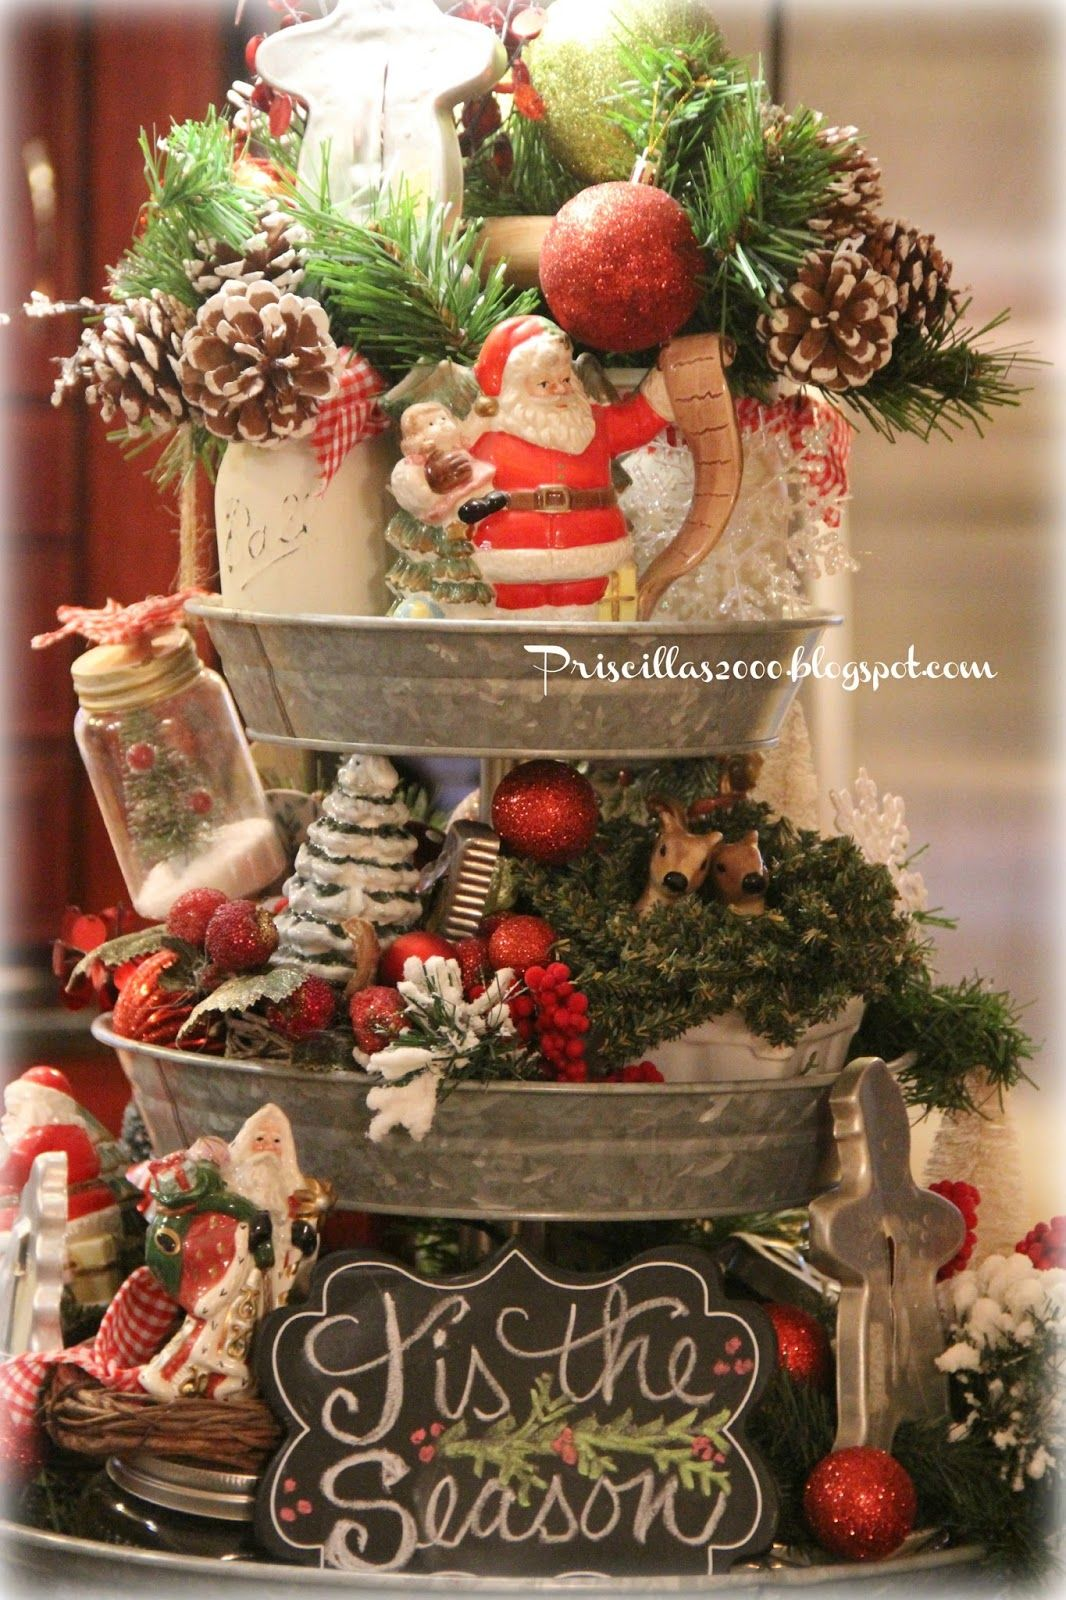 Christmas Galvanized Tiered Tray 2015 Christmas Decor